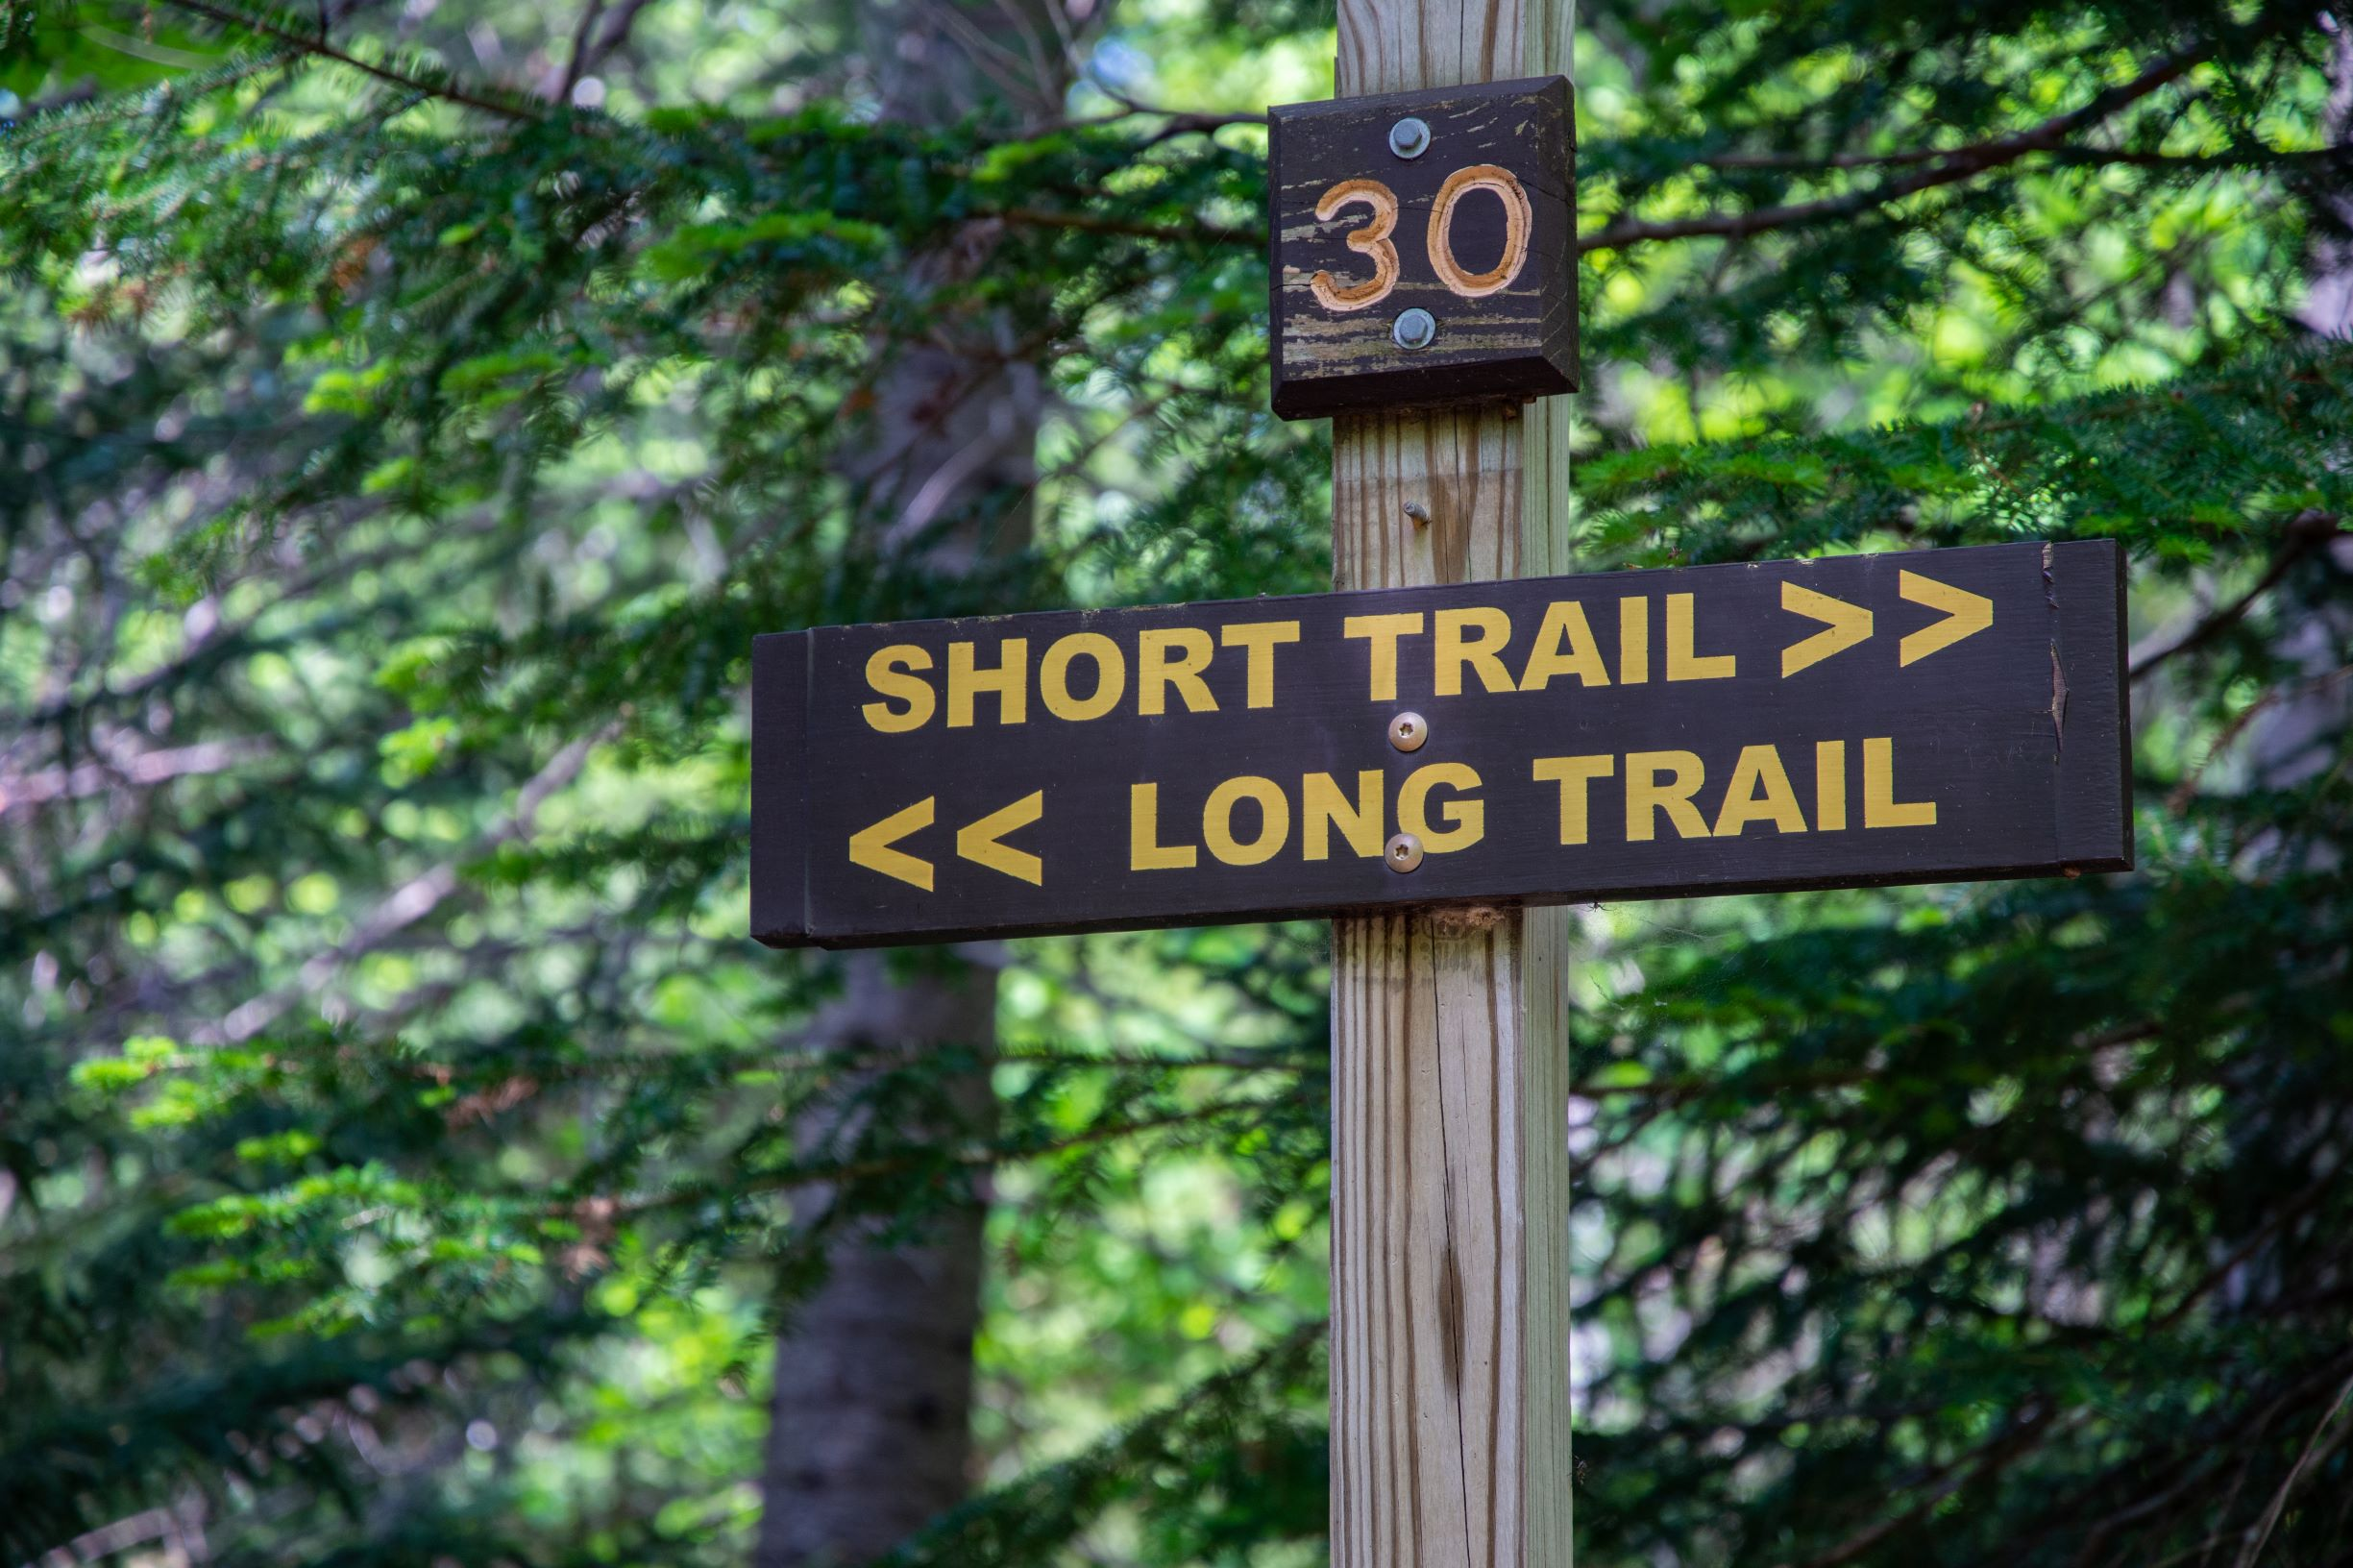 A trail sign